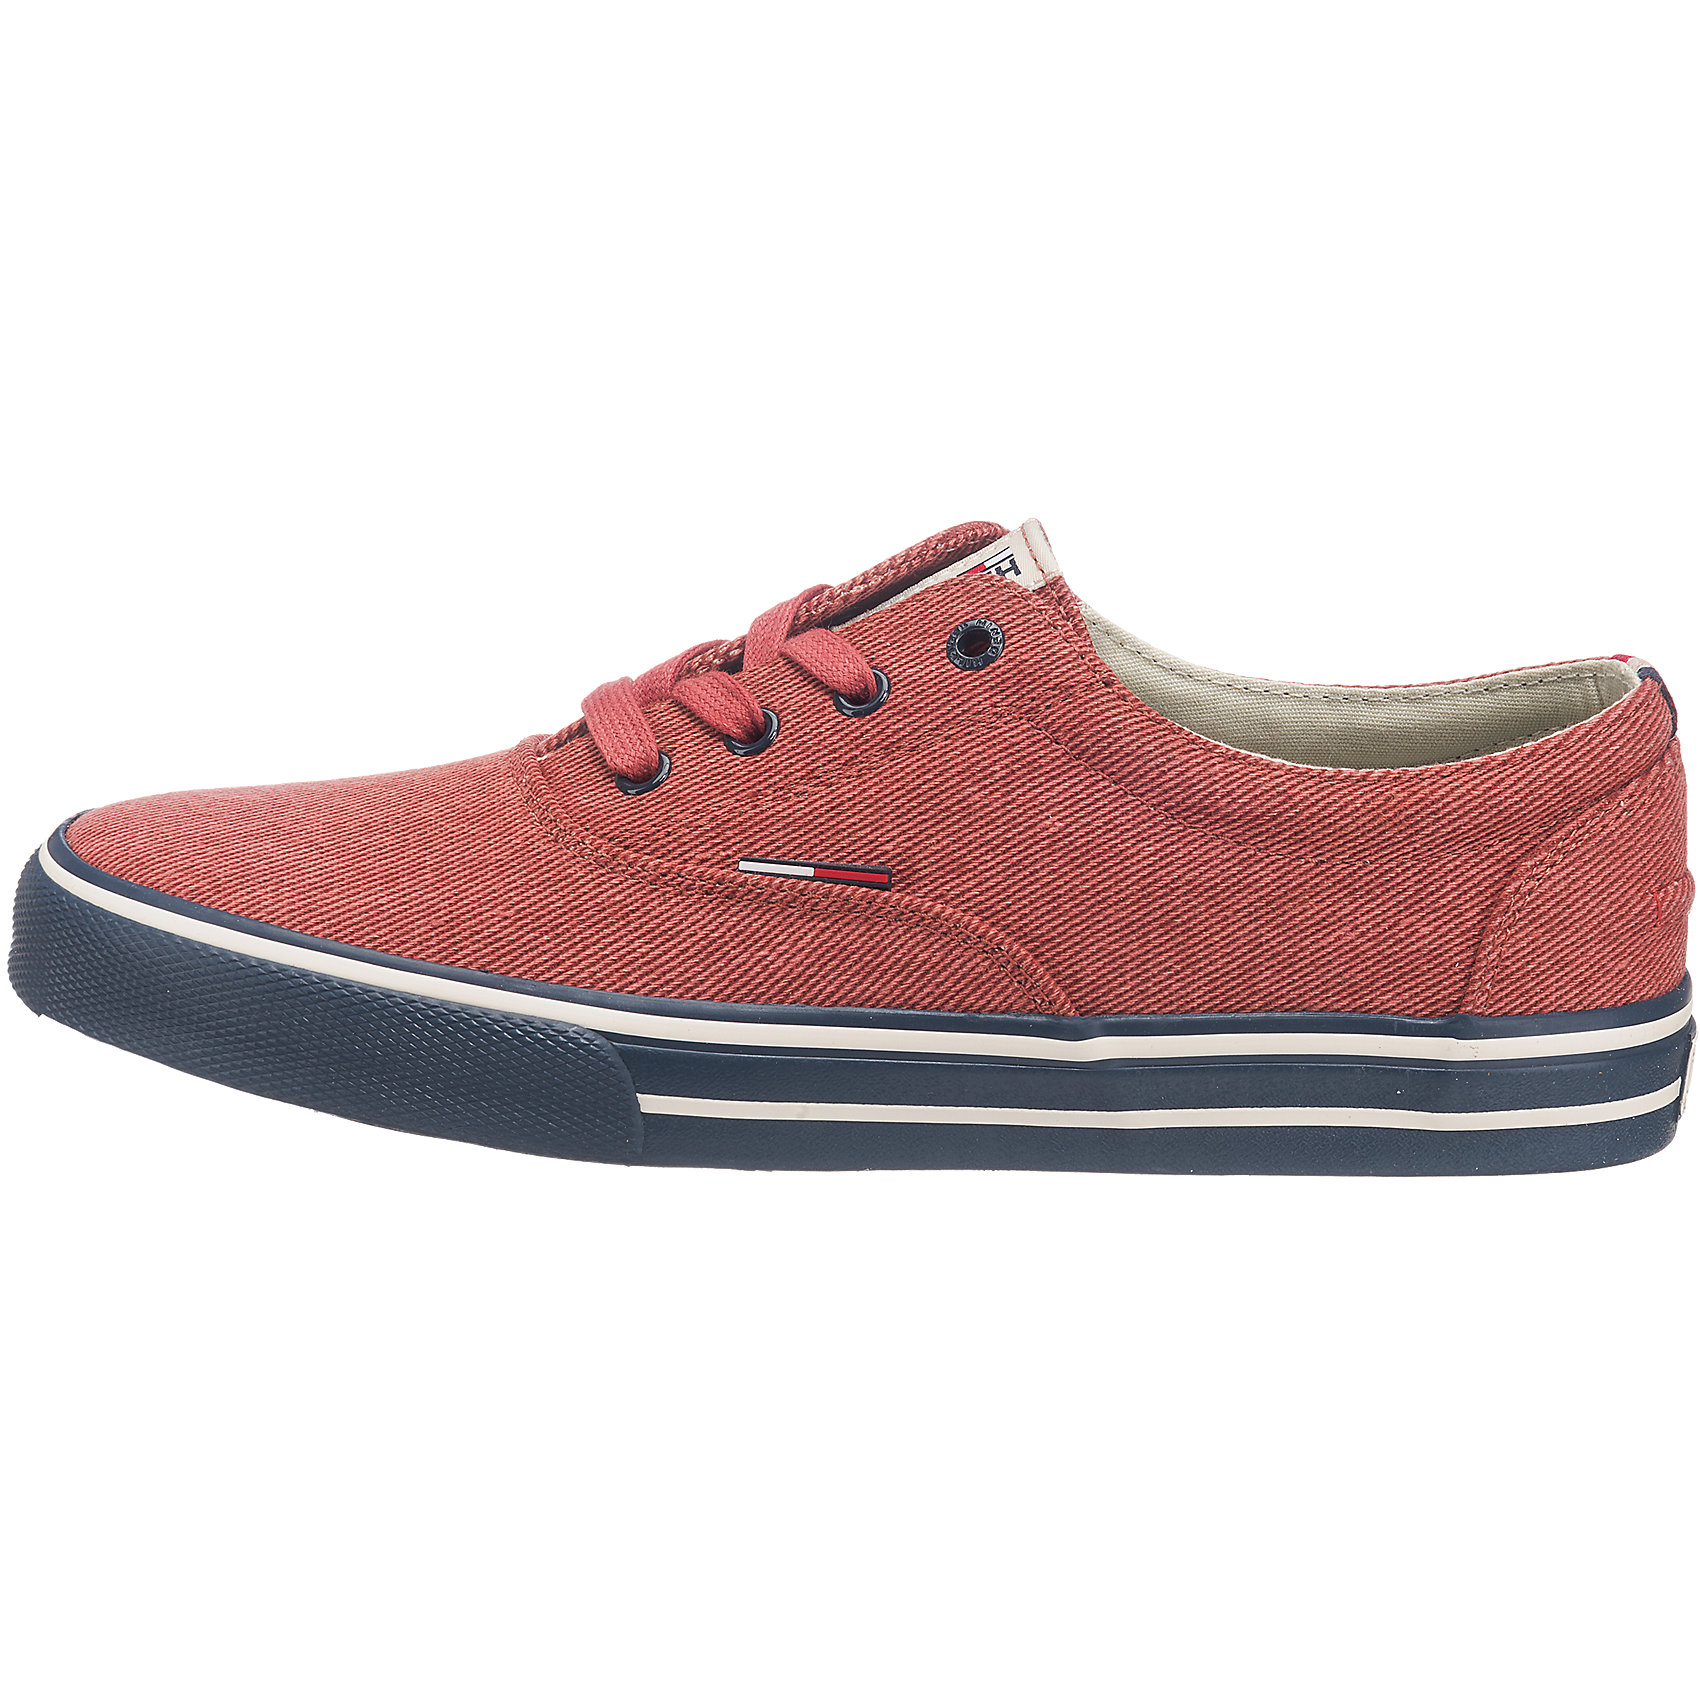 Neu HILFIGER DENIM 5772510 Vic Sneakers weiß rot 5772510 DENIM c4d279